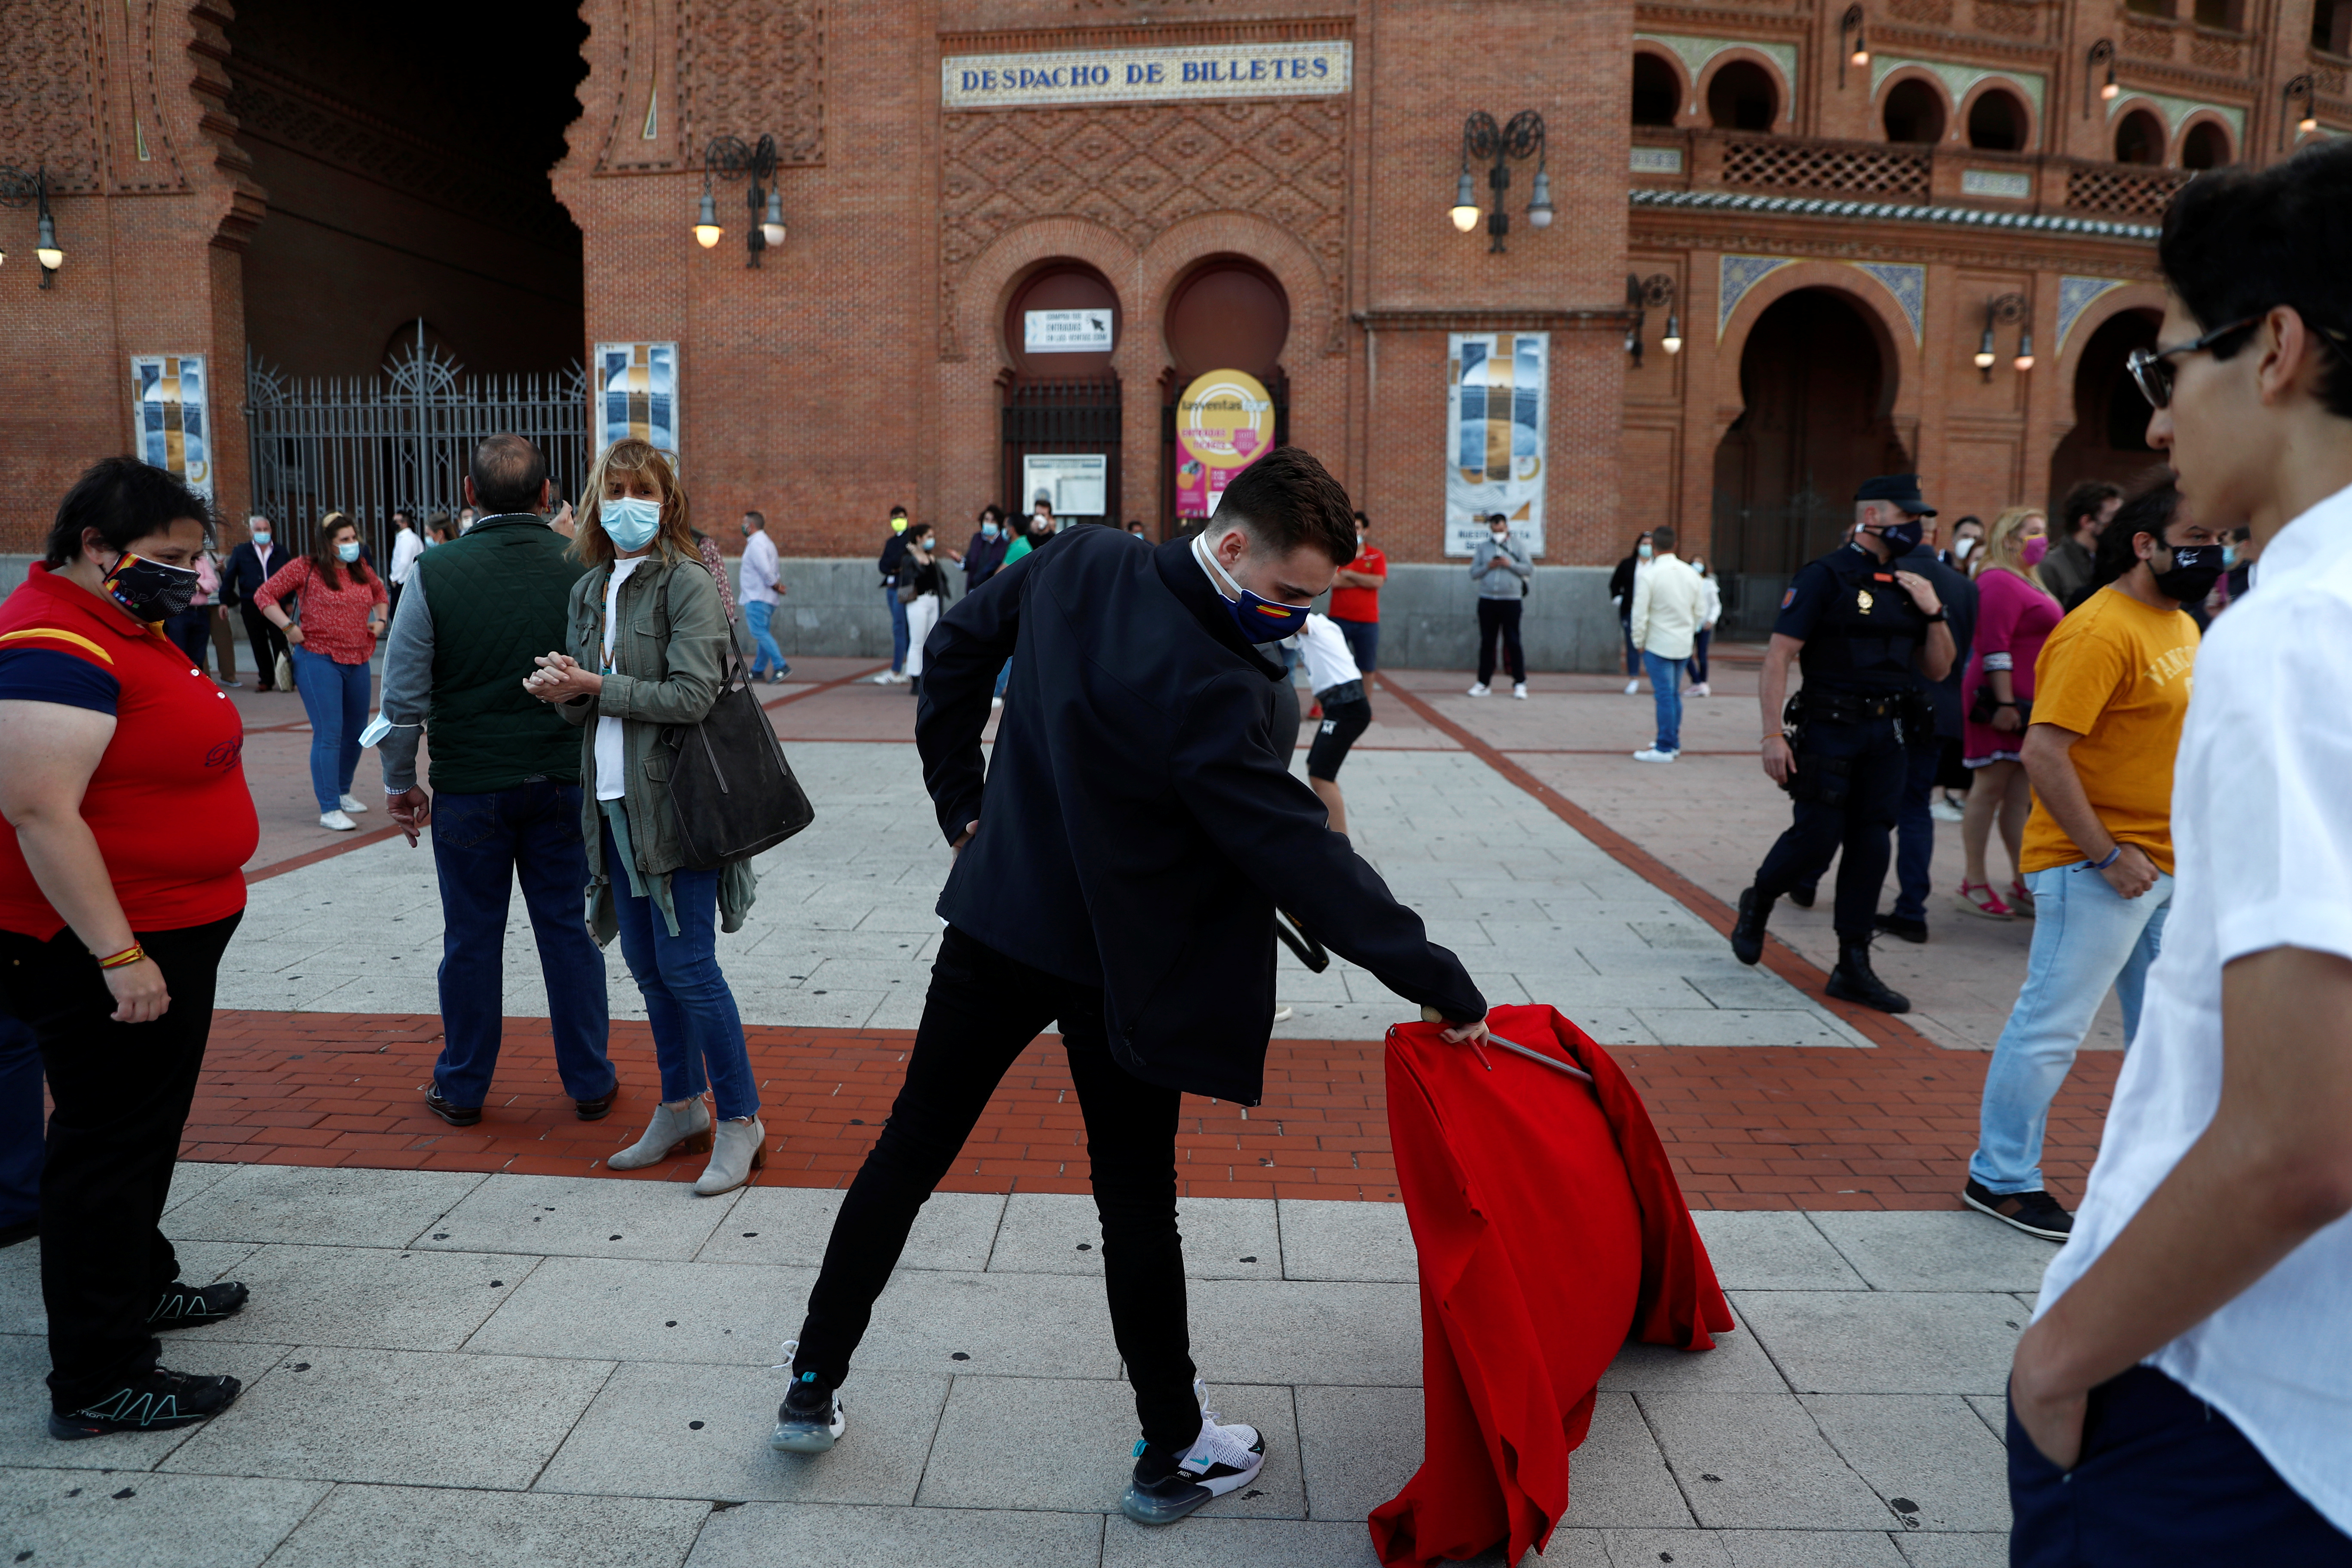 A man performs a pass with a cape as people stand outside Las Ventas bullring to show support for bullfighting, following the impact of the coronavirus disease (COVID-19) outbreak which led to the cancellation of bullfights, in Madrid, Spain, June 13, 2020. REUTERS/Susana Vera